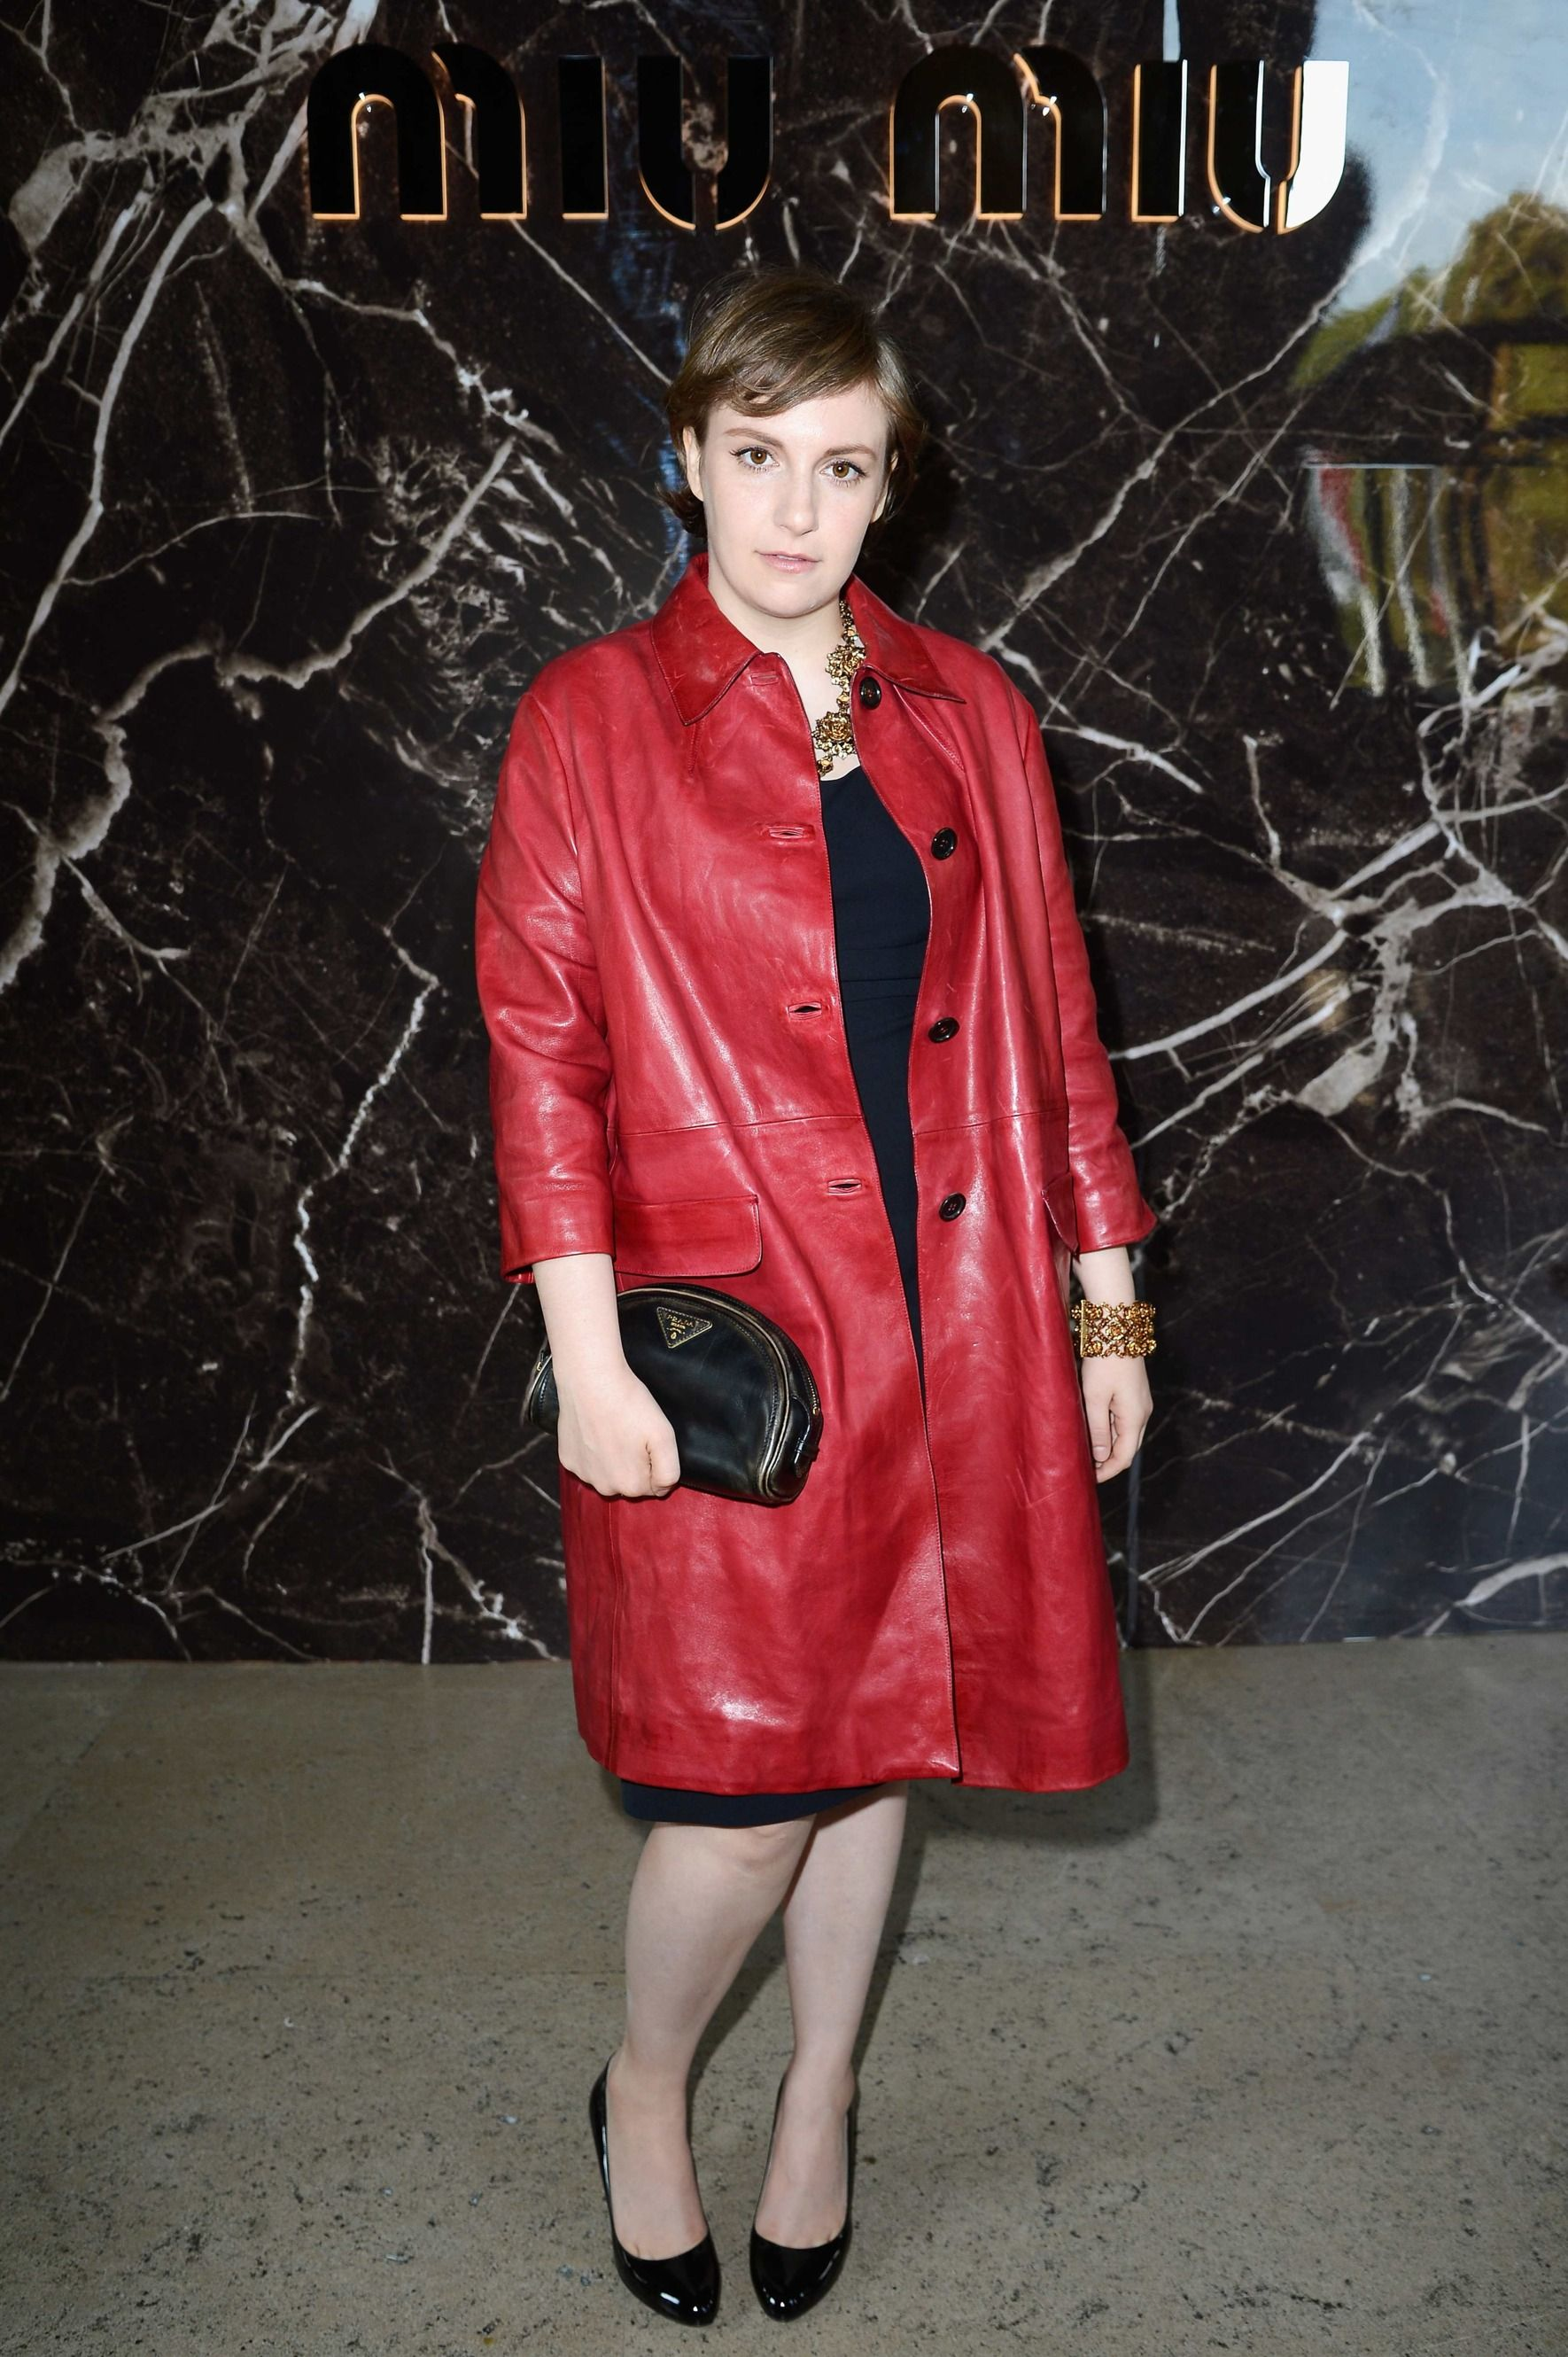 LOVE this leather jacket. Lena Dunham October 2, 2013 - The Cut